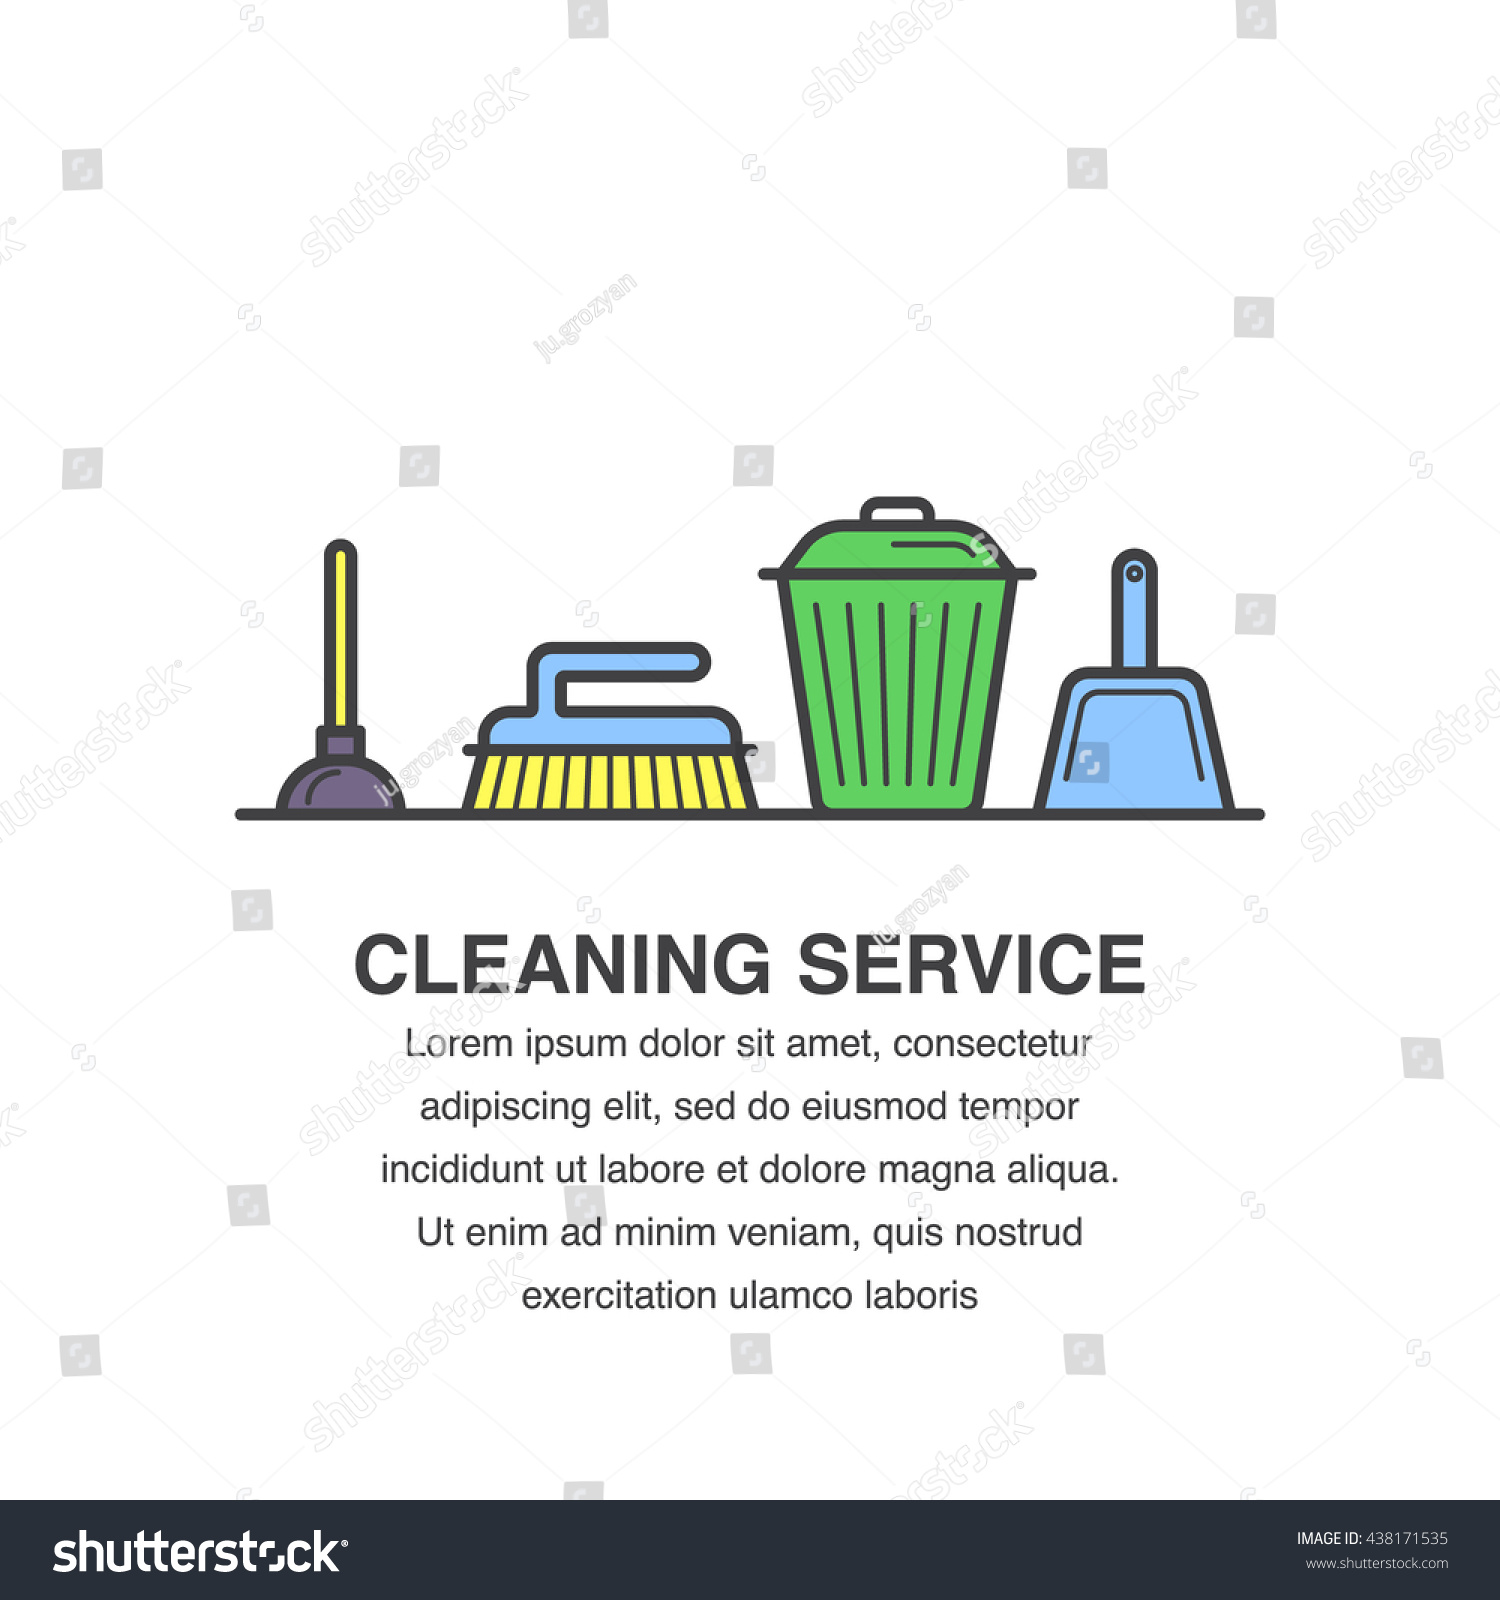 cleaning service banner design for advertisement trash bin save to a lightbox